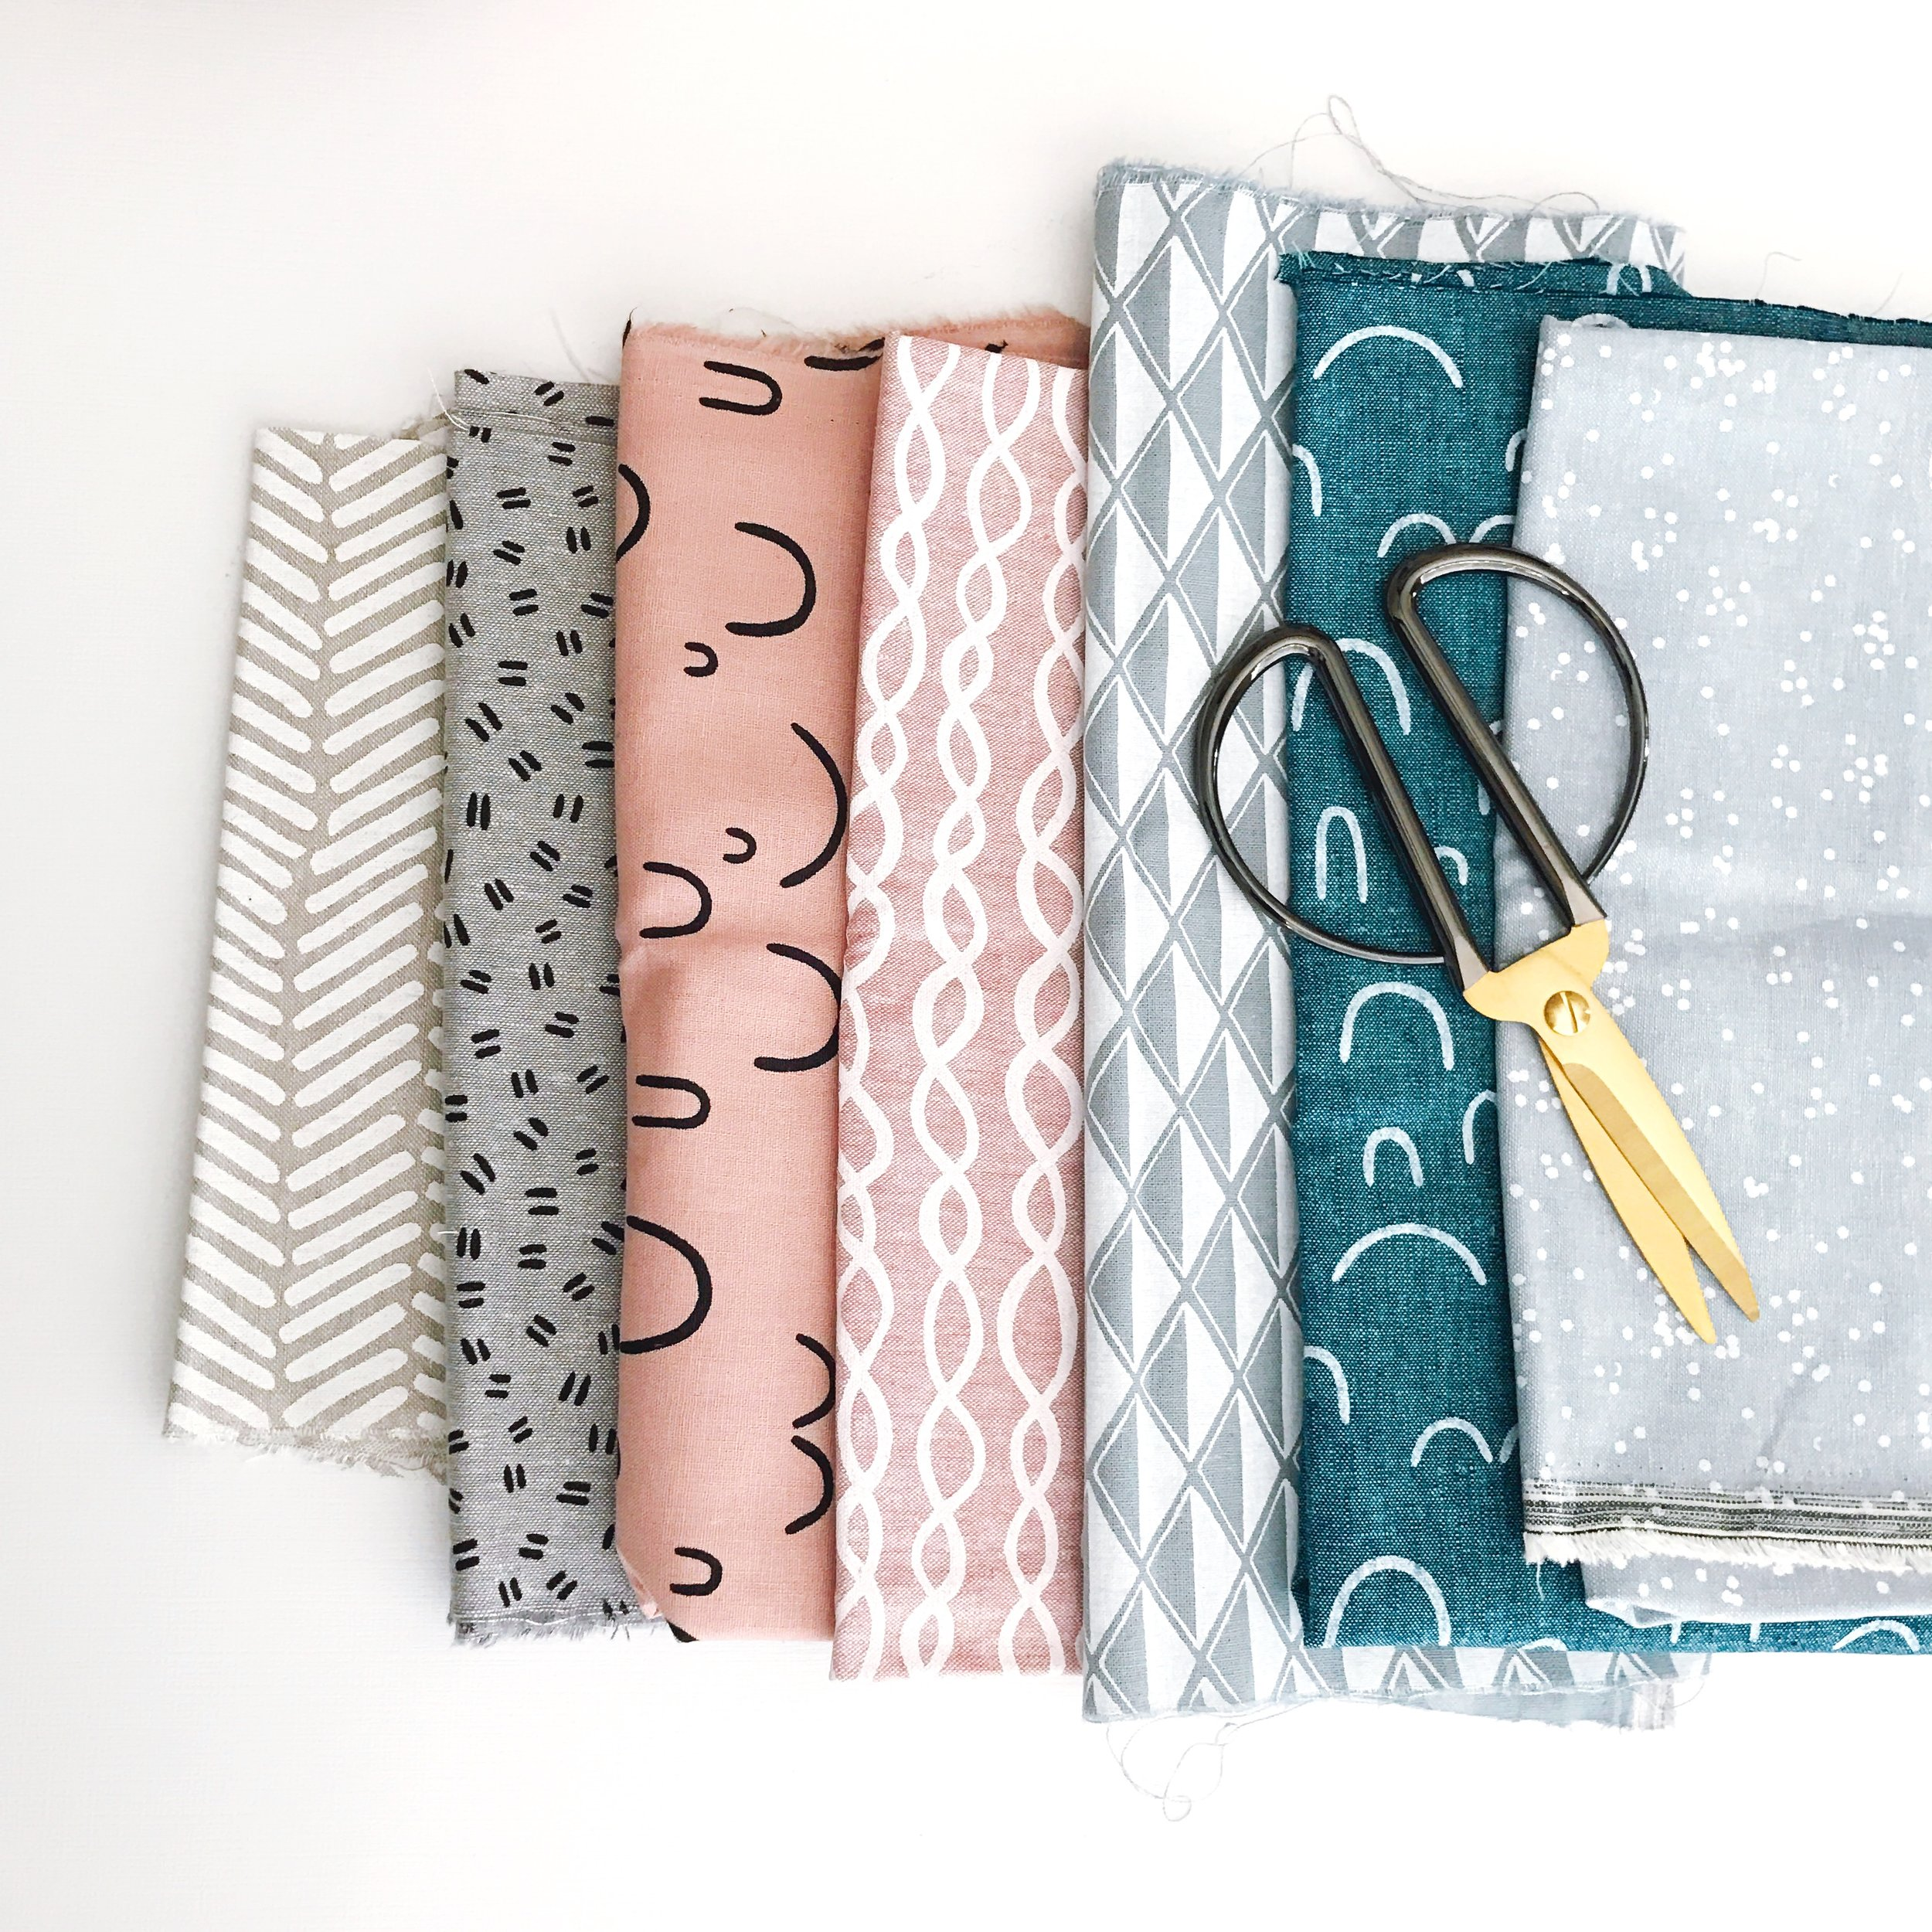 a line of folded fabric with a pair of scissors.